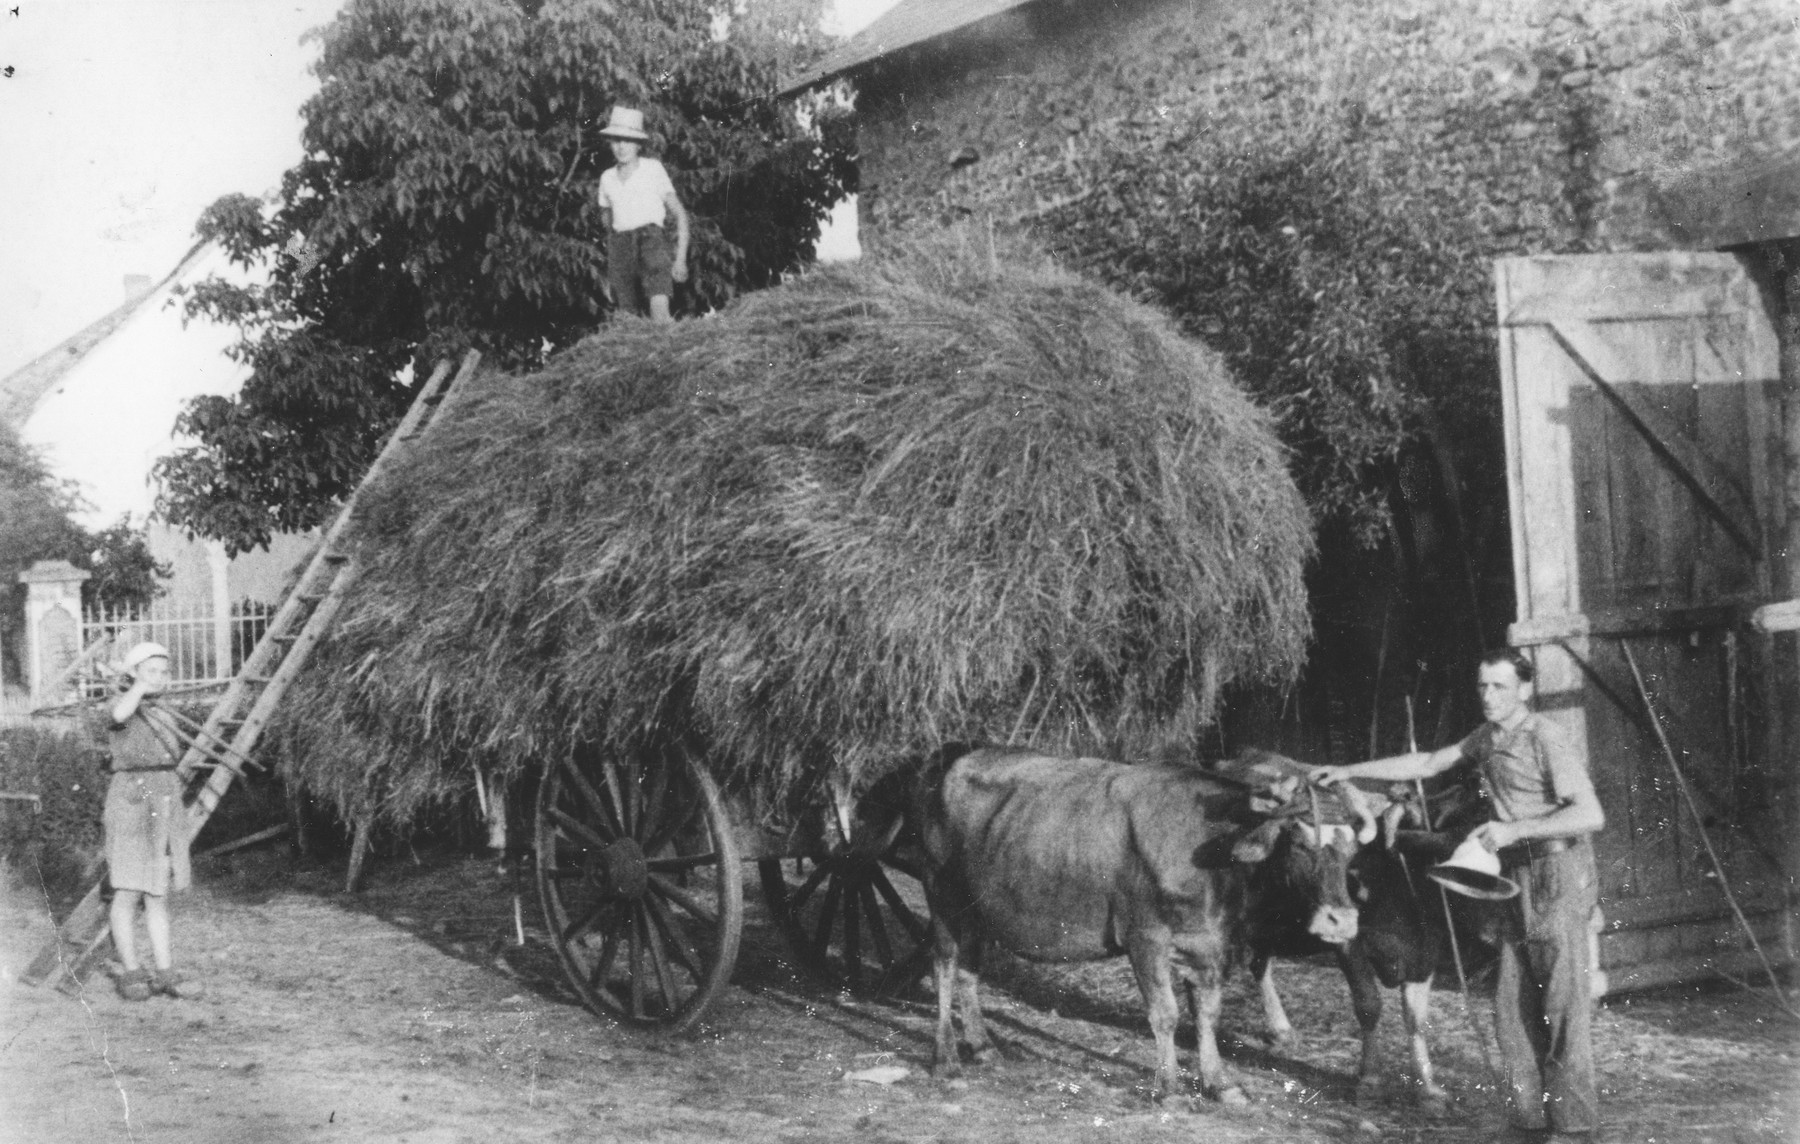 Ingeborg Haas, a Jewish refugee living at the Chabannes children's home, helps load a hay wagon at the farm where she worked near the home.